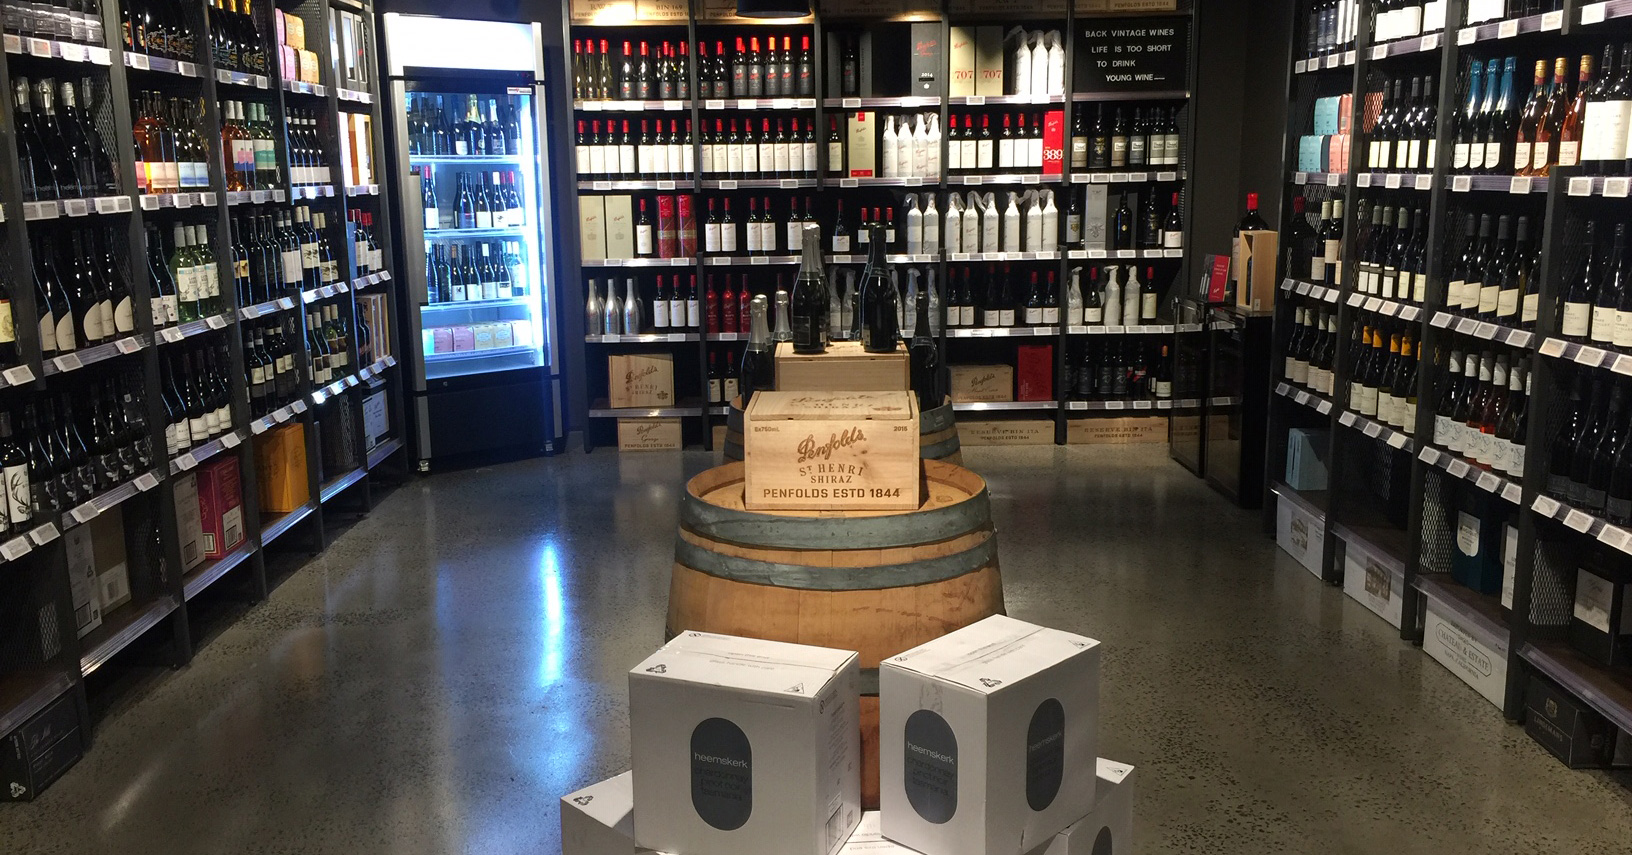 TWE's wine shop in Melbourne was recently installed with electronic shelf labels by esLabels.